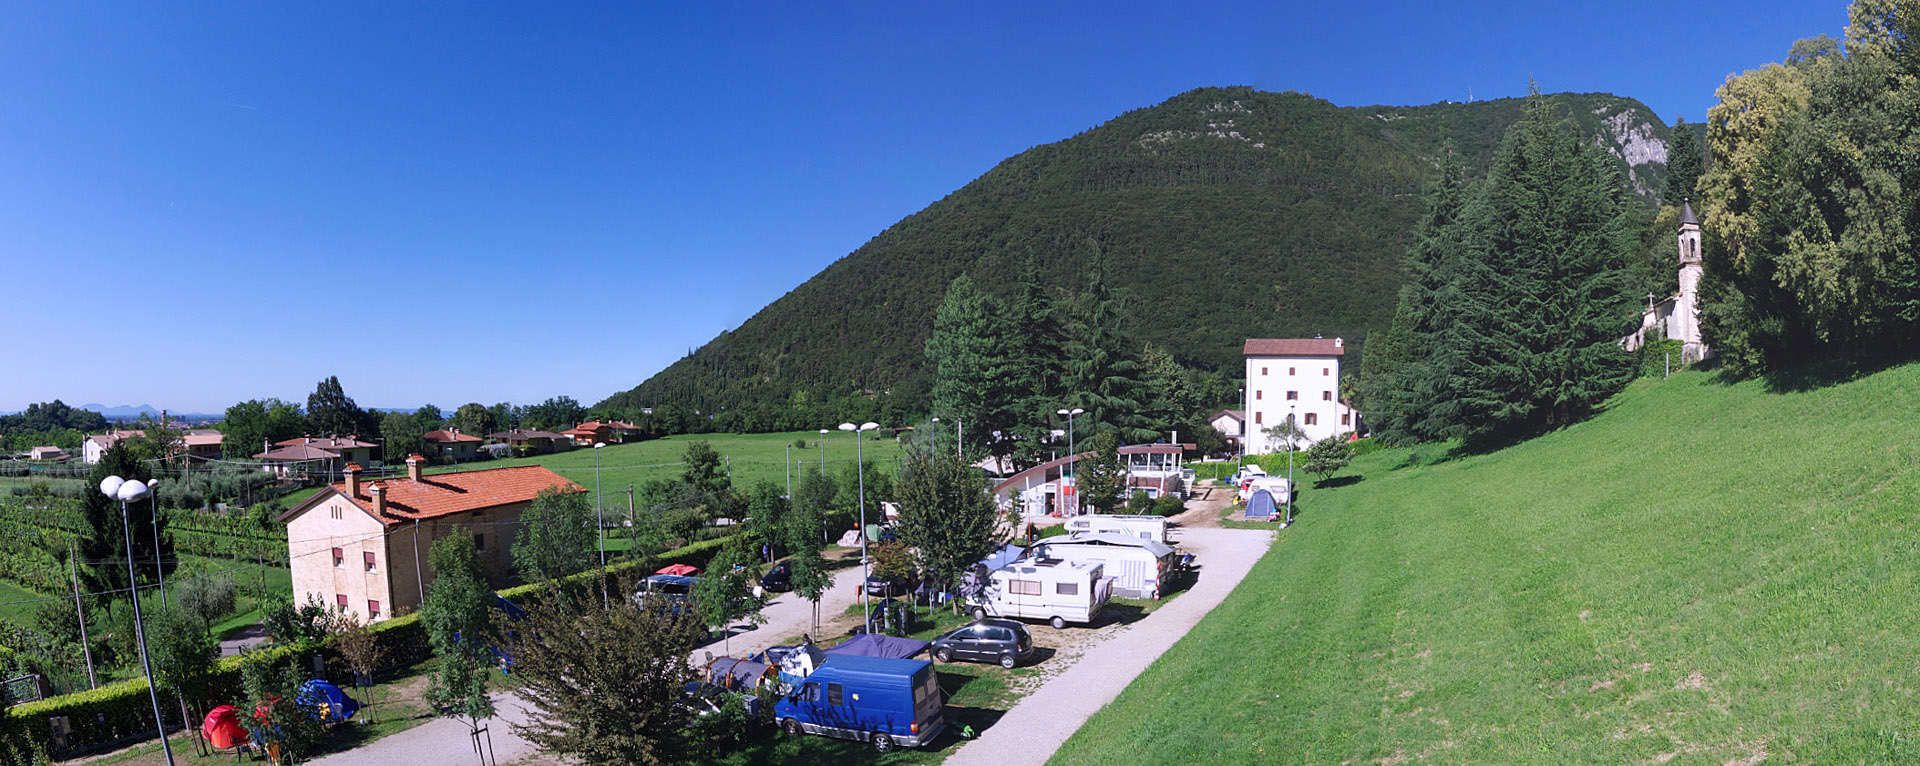 Camping antica abbazia for Borso del grappa piscine